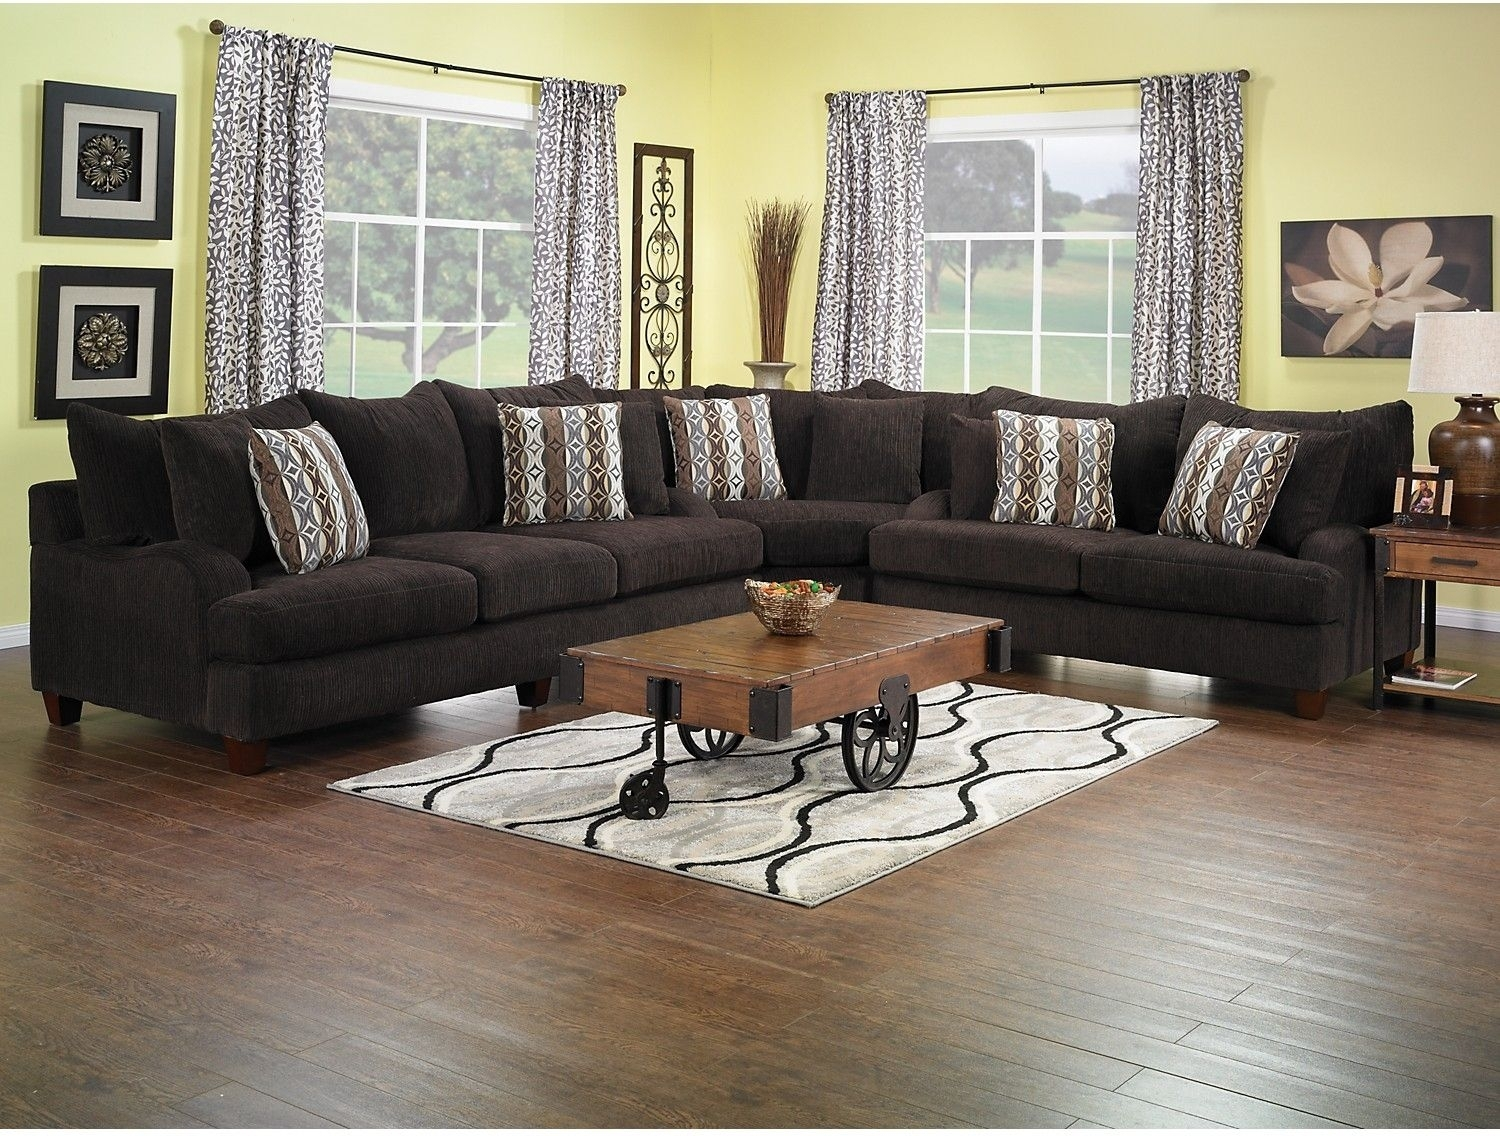 Putty Chenille 3-Piece Sectional - Chocolate | Living Room Furniture in Sectional Sofas At Brick (Image 11 of 15)